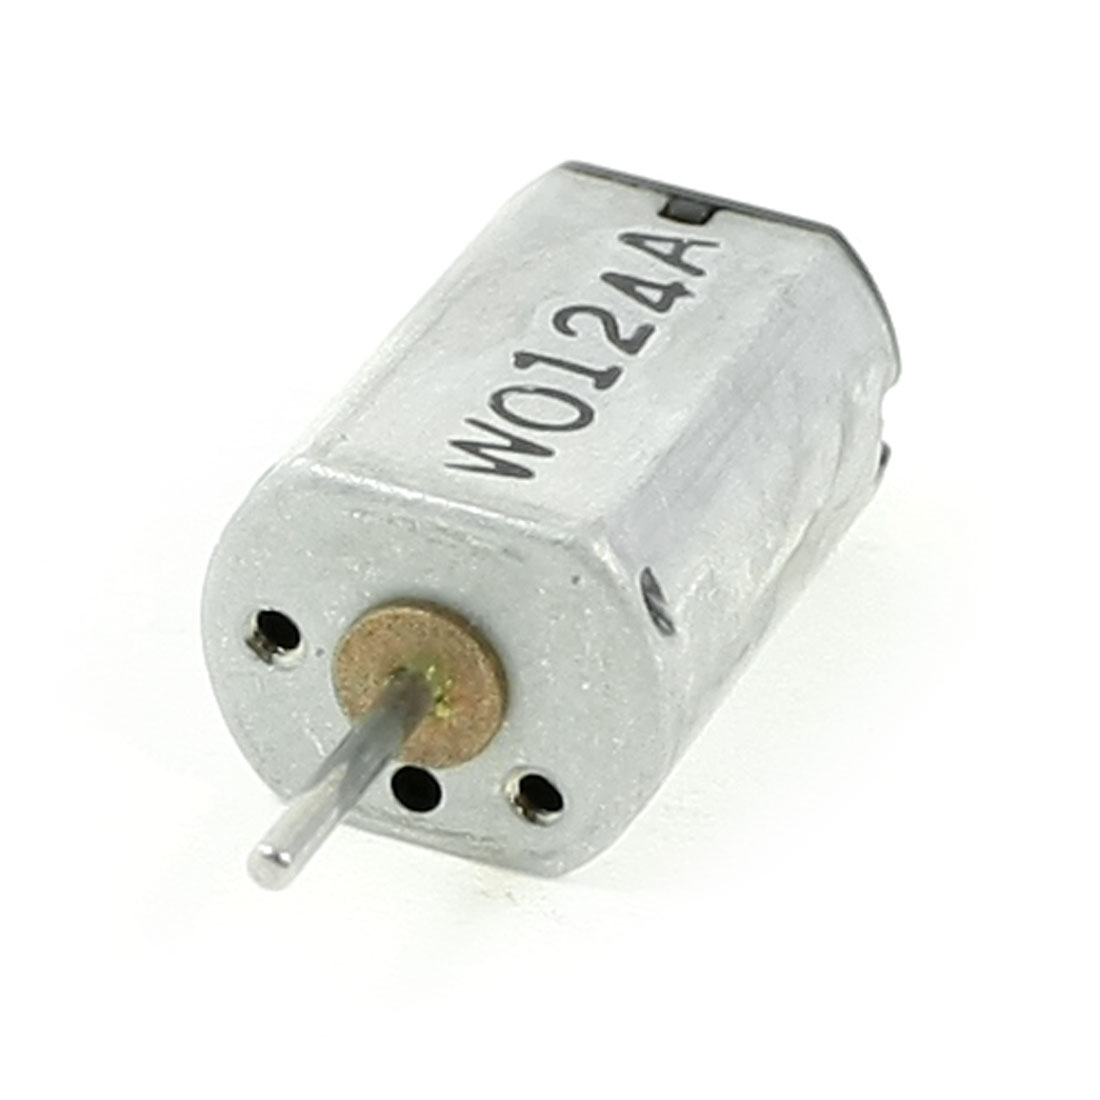 1mm-Shaft-High-Torque-Electric-Micro-Motor-22000RPM-DC-6V-0-03Amp